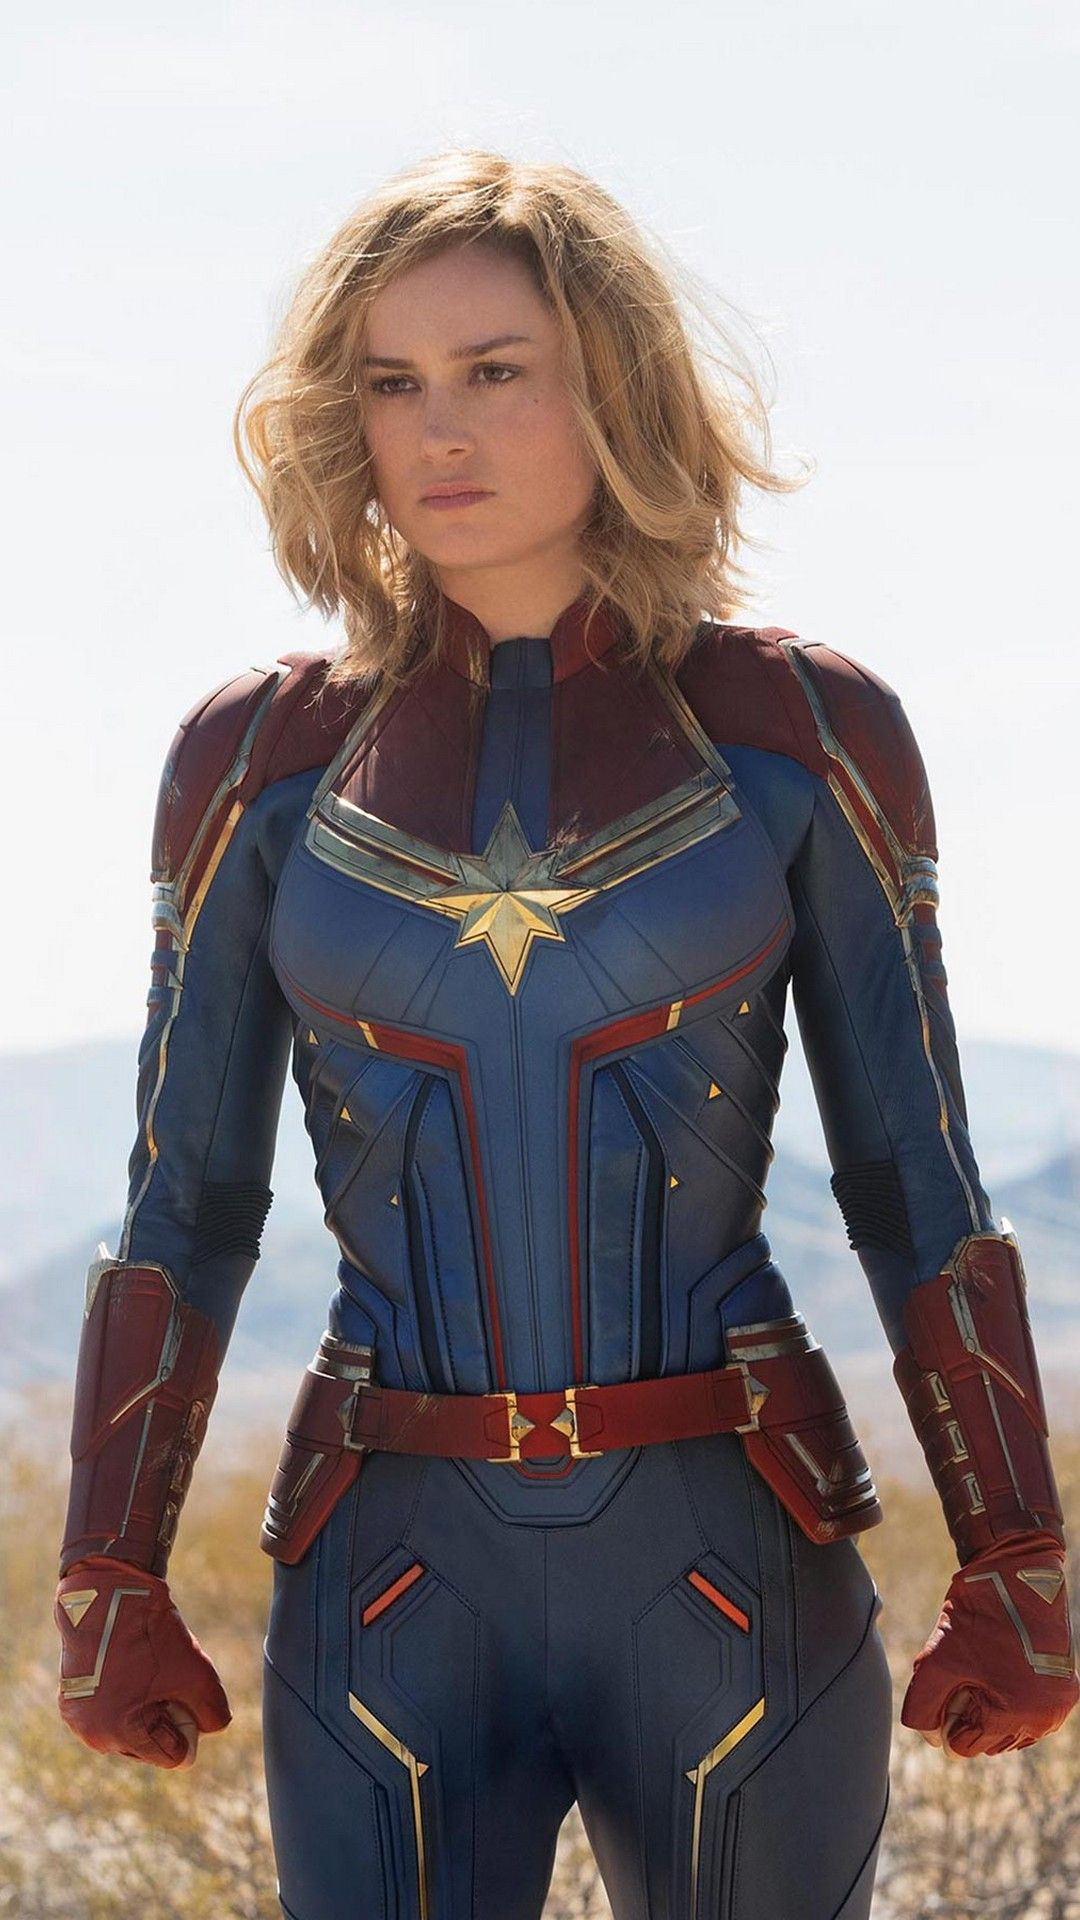 iPhone Wallpapers HD from movieposterhd.com,  Captain Marvel Wallpaper Mobile - Best Movie Poster Wallpaper HD